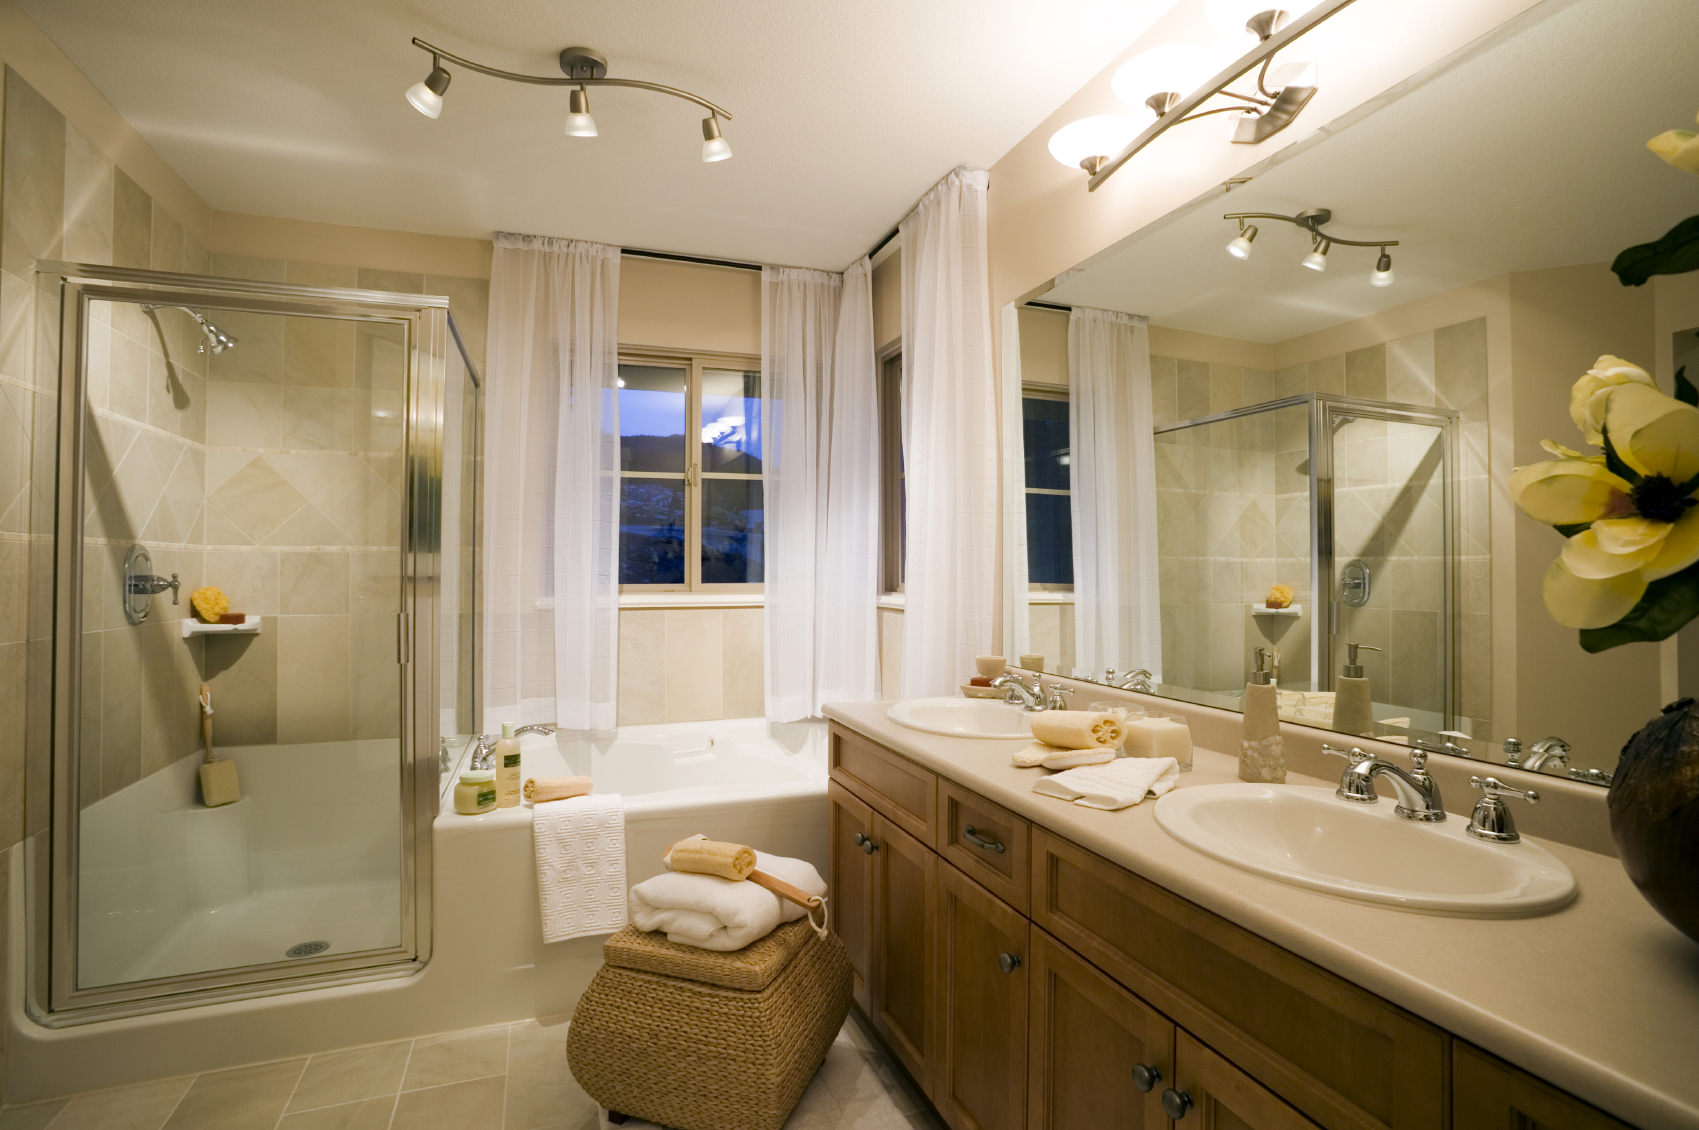 Small bathroom window treatments 6711 for Bathroom design and renovations